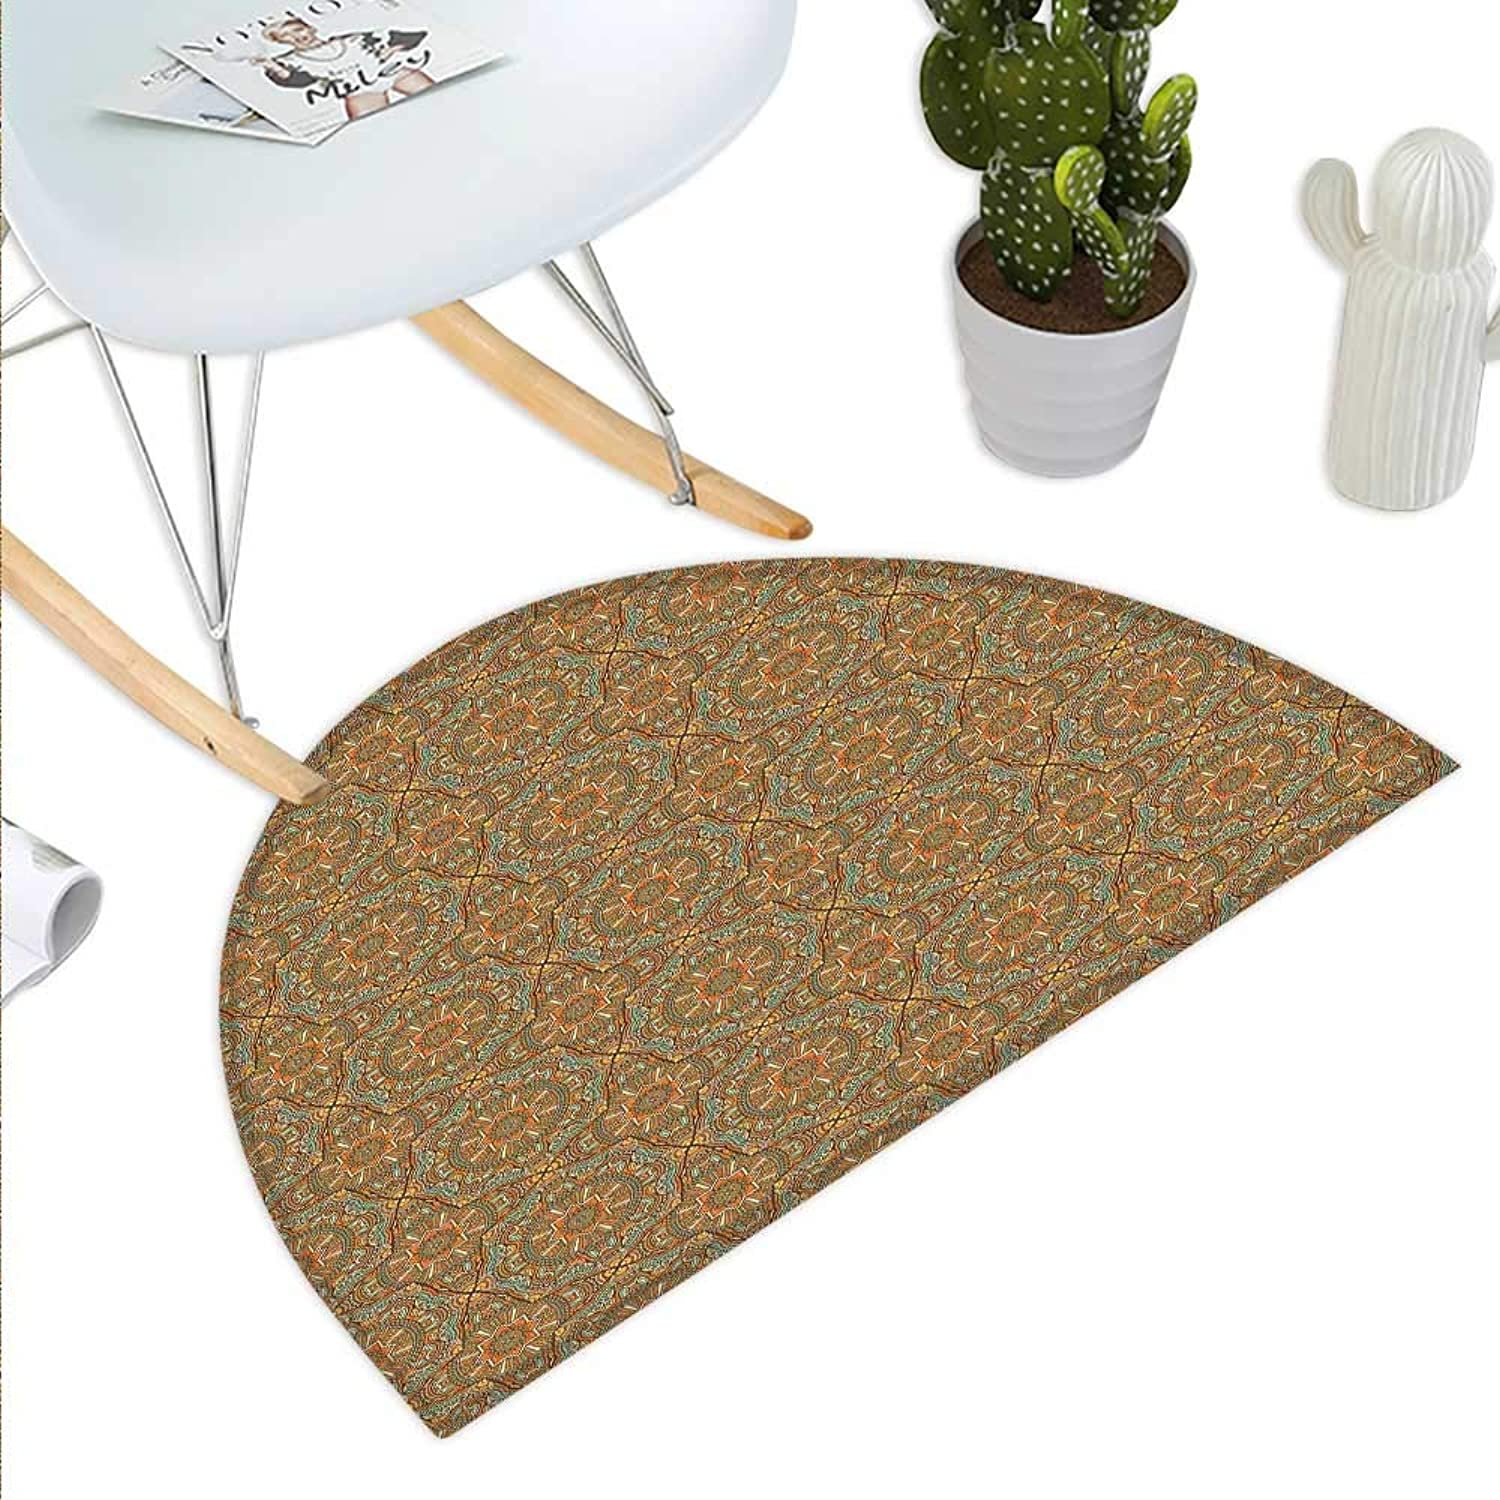 Traditional Semicircle Doormat Bohemian Mgoldccan Star with Ornamental Scroll Lines Curves Vintage Illustration Halfmoon doormats H 51.1  xD 76.7  Multicolor